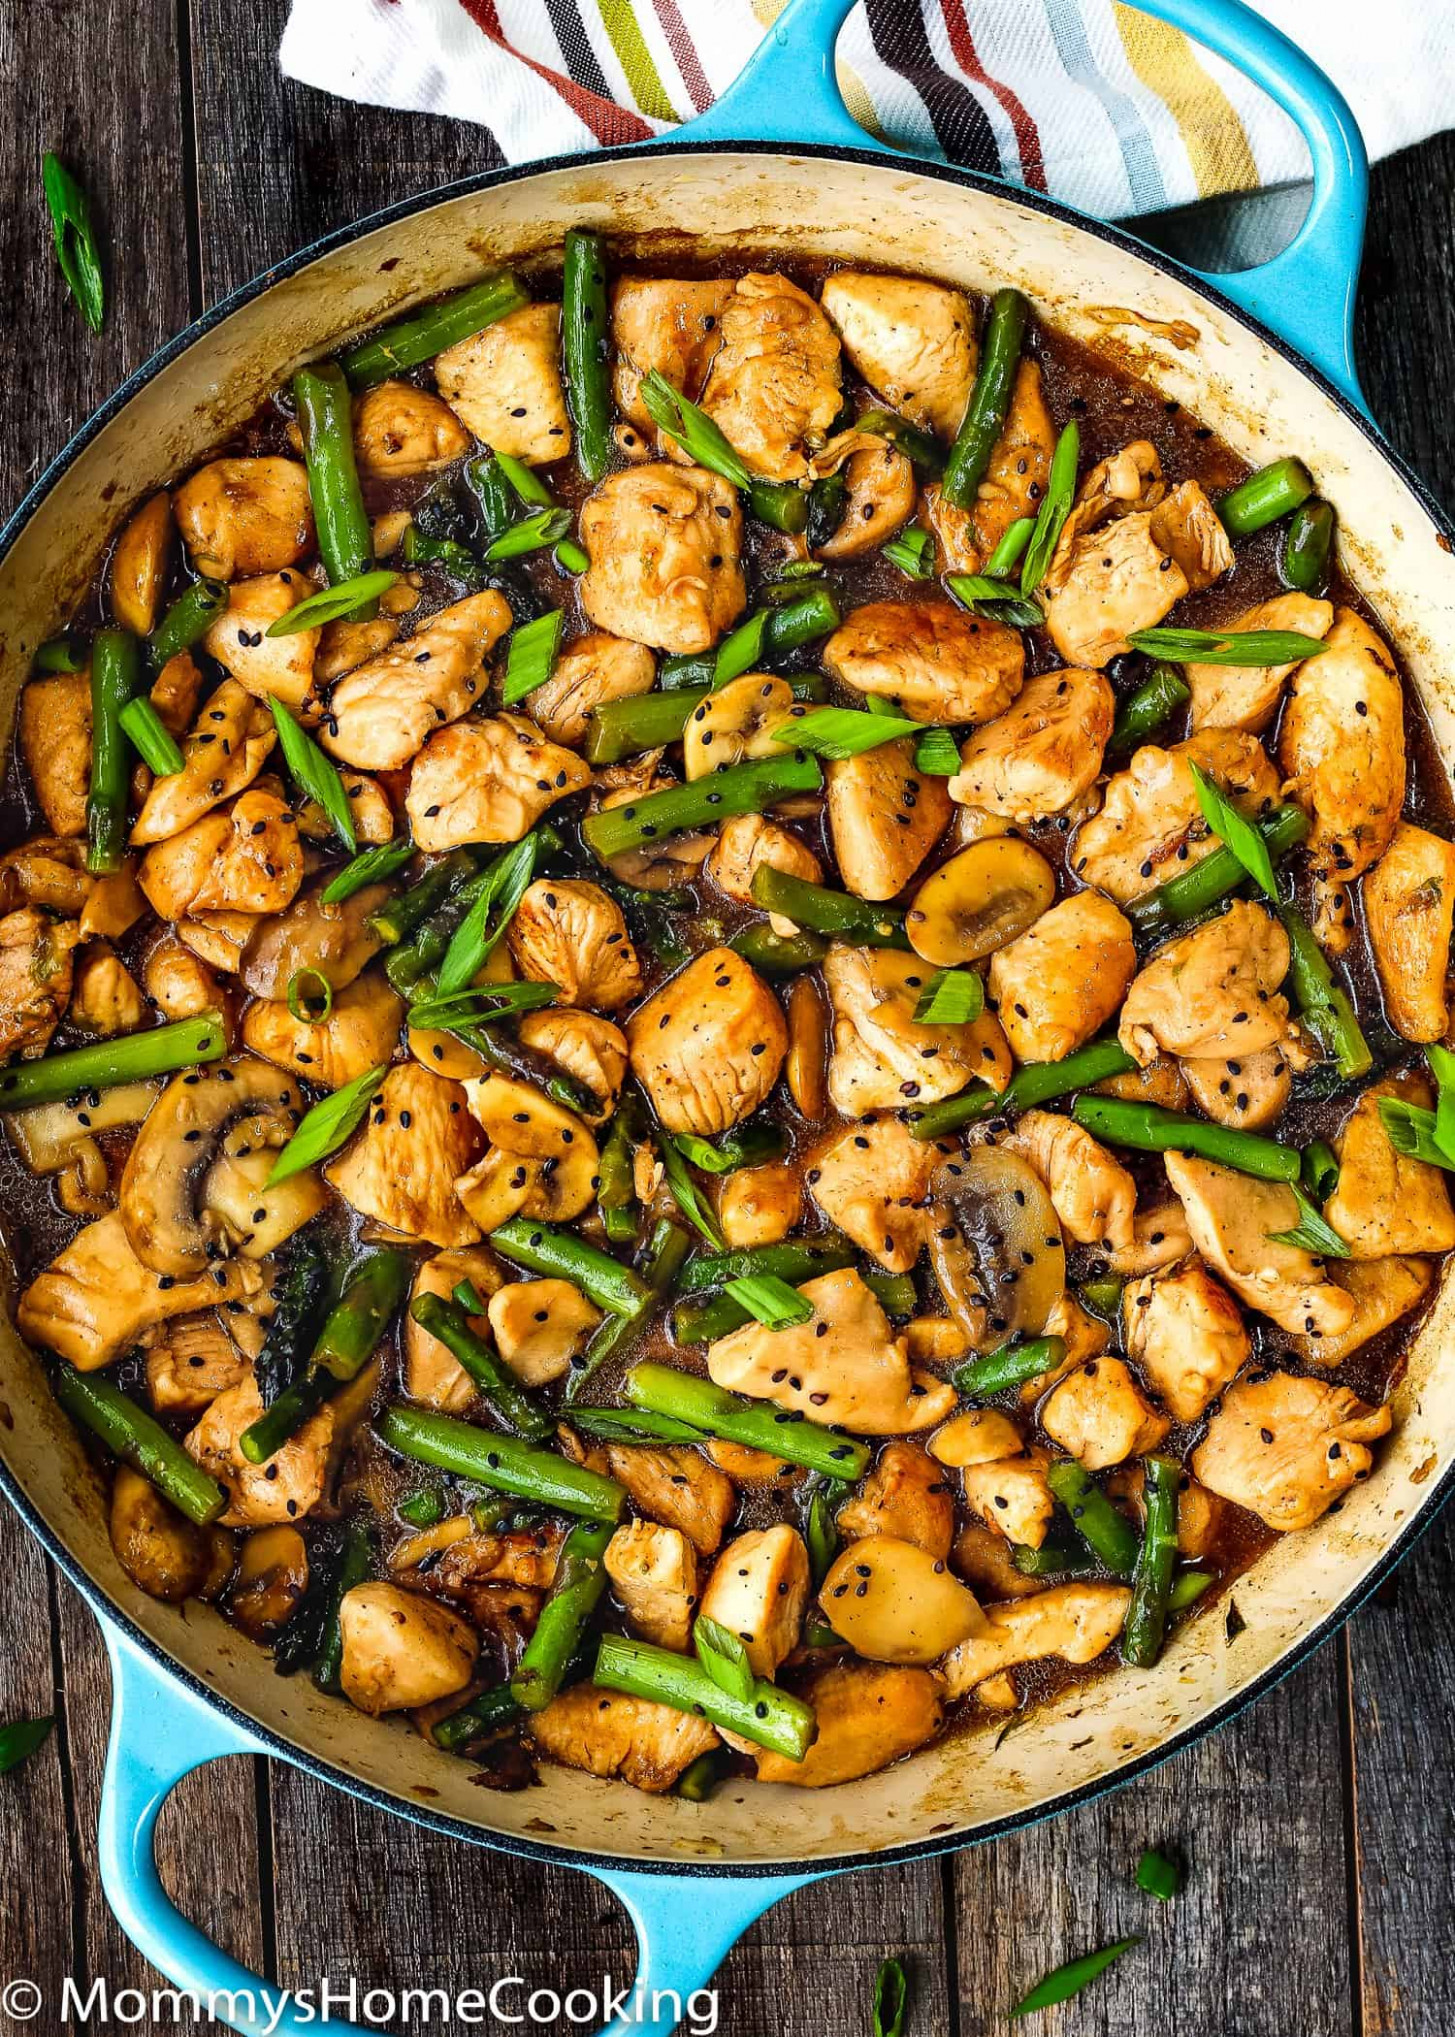 Easy Healthy Chicken and Asparagus Skillet - dinner recipes meal prep